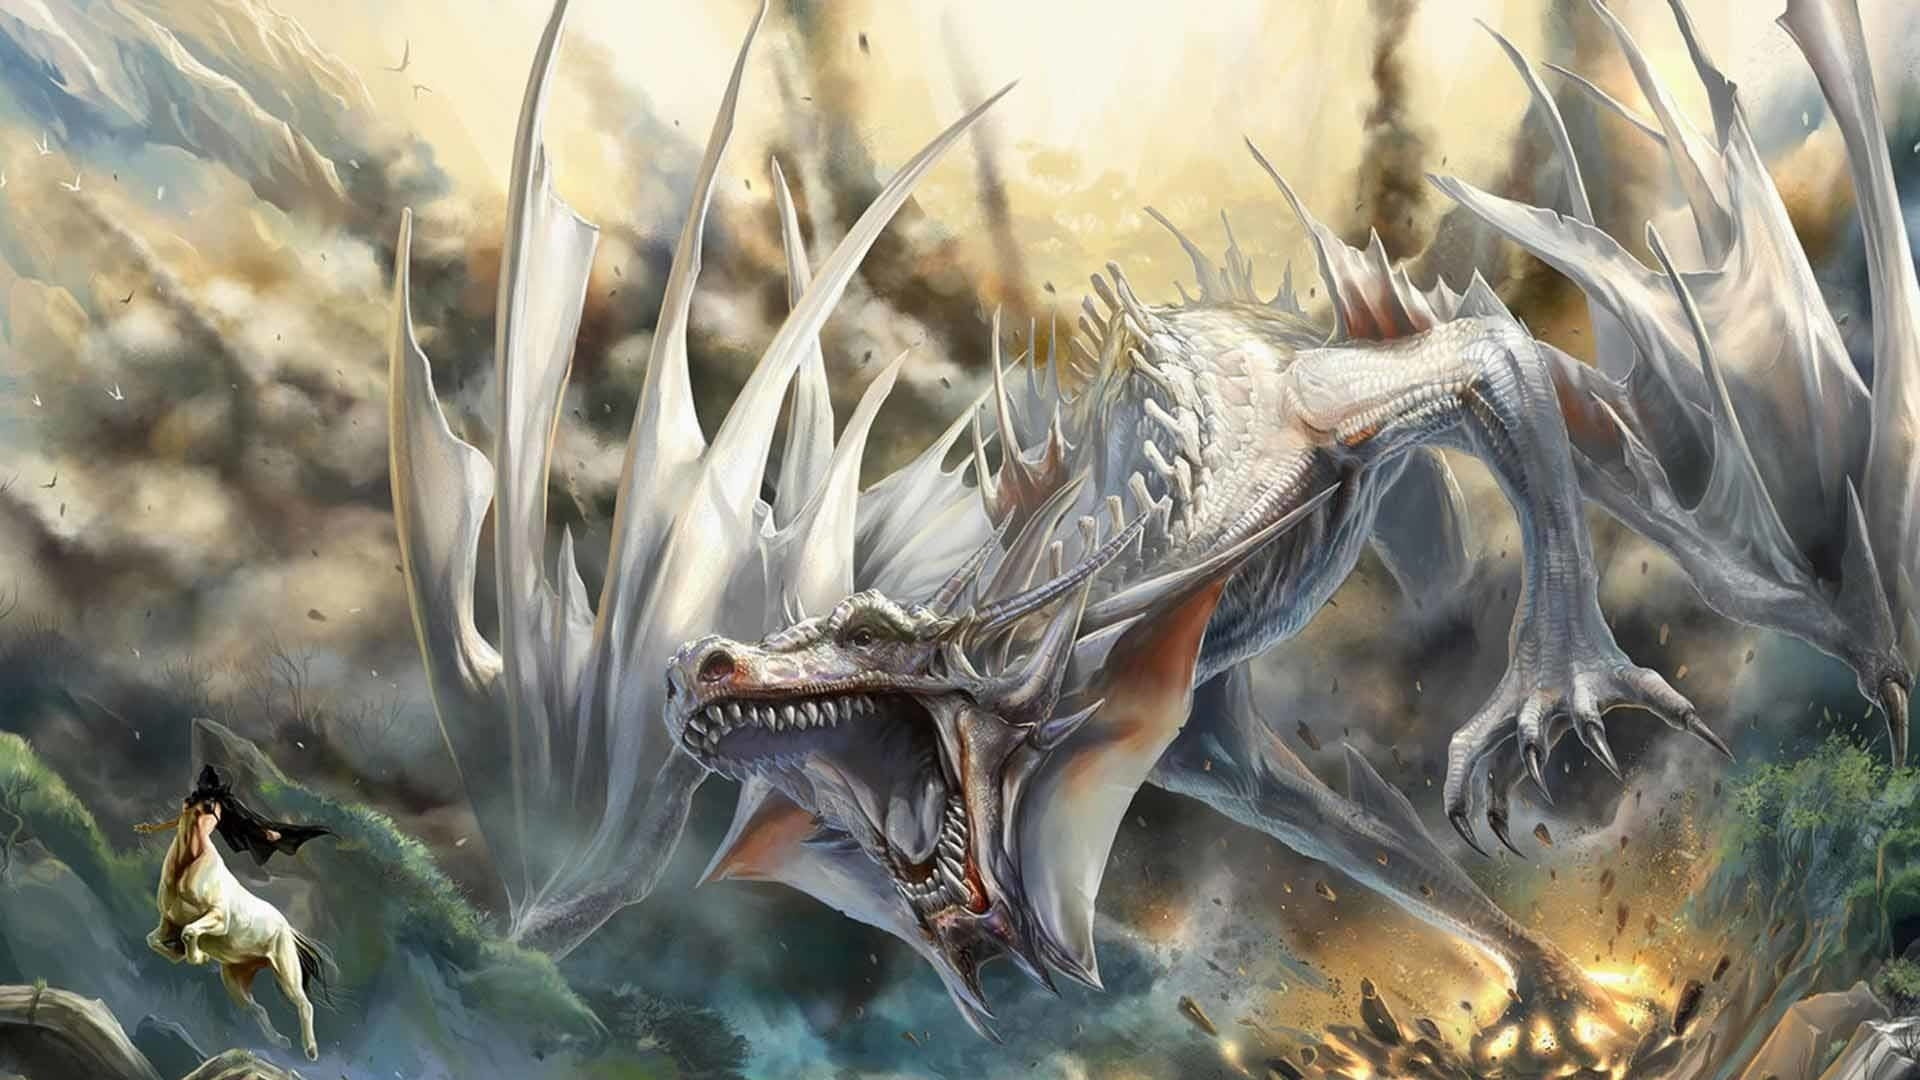 dragon wallpaper hd 1080p (76+ images)